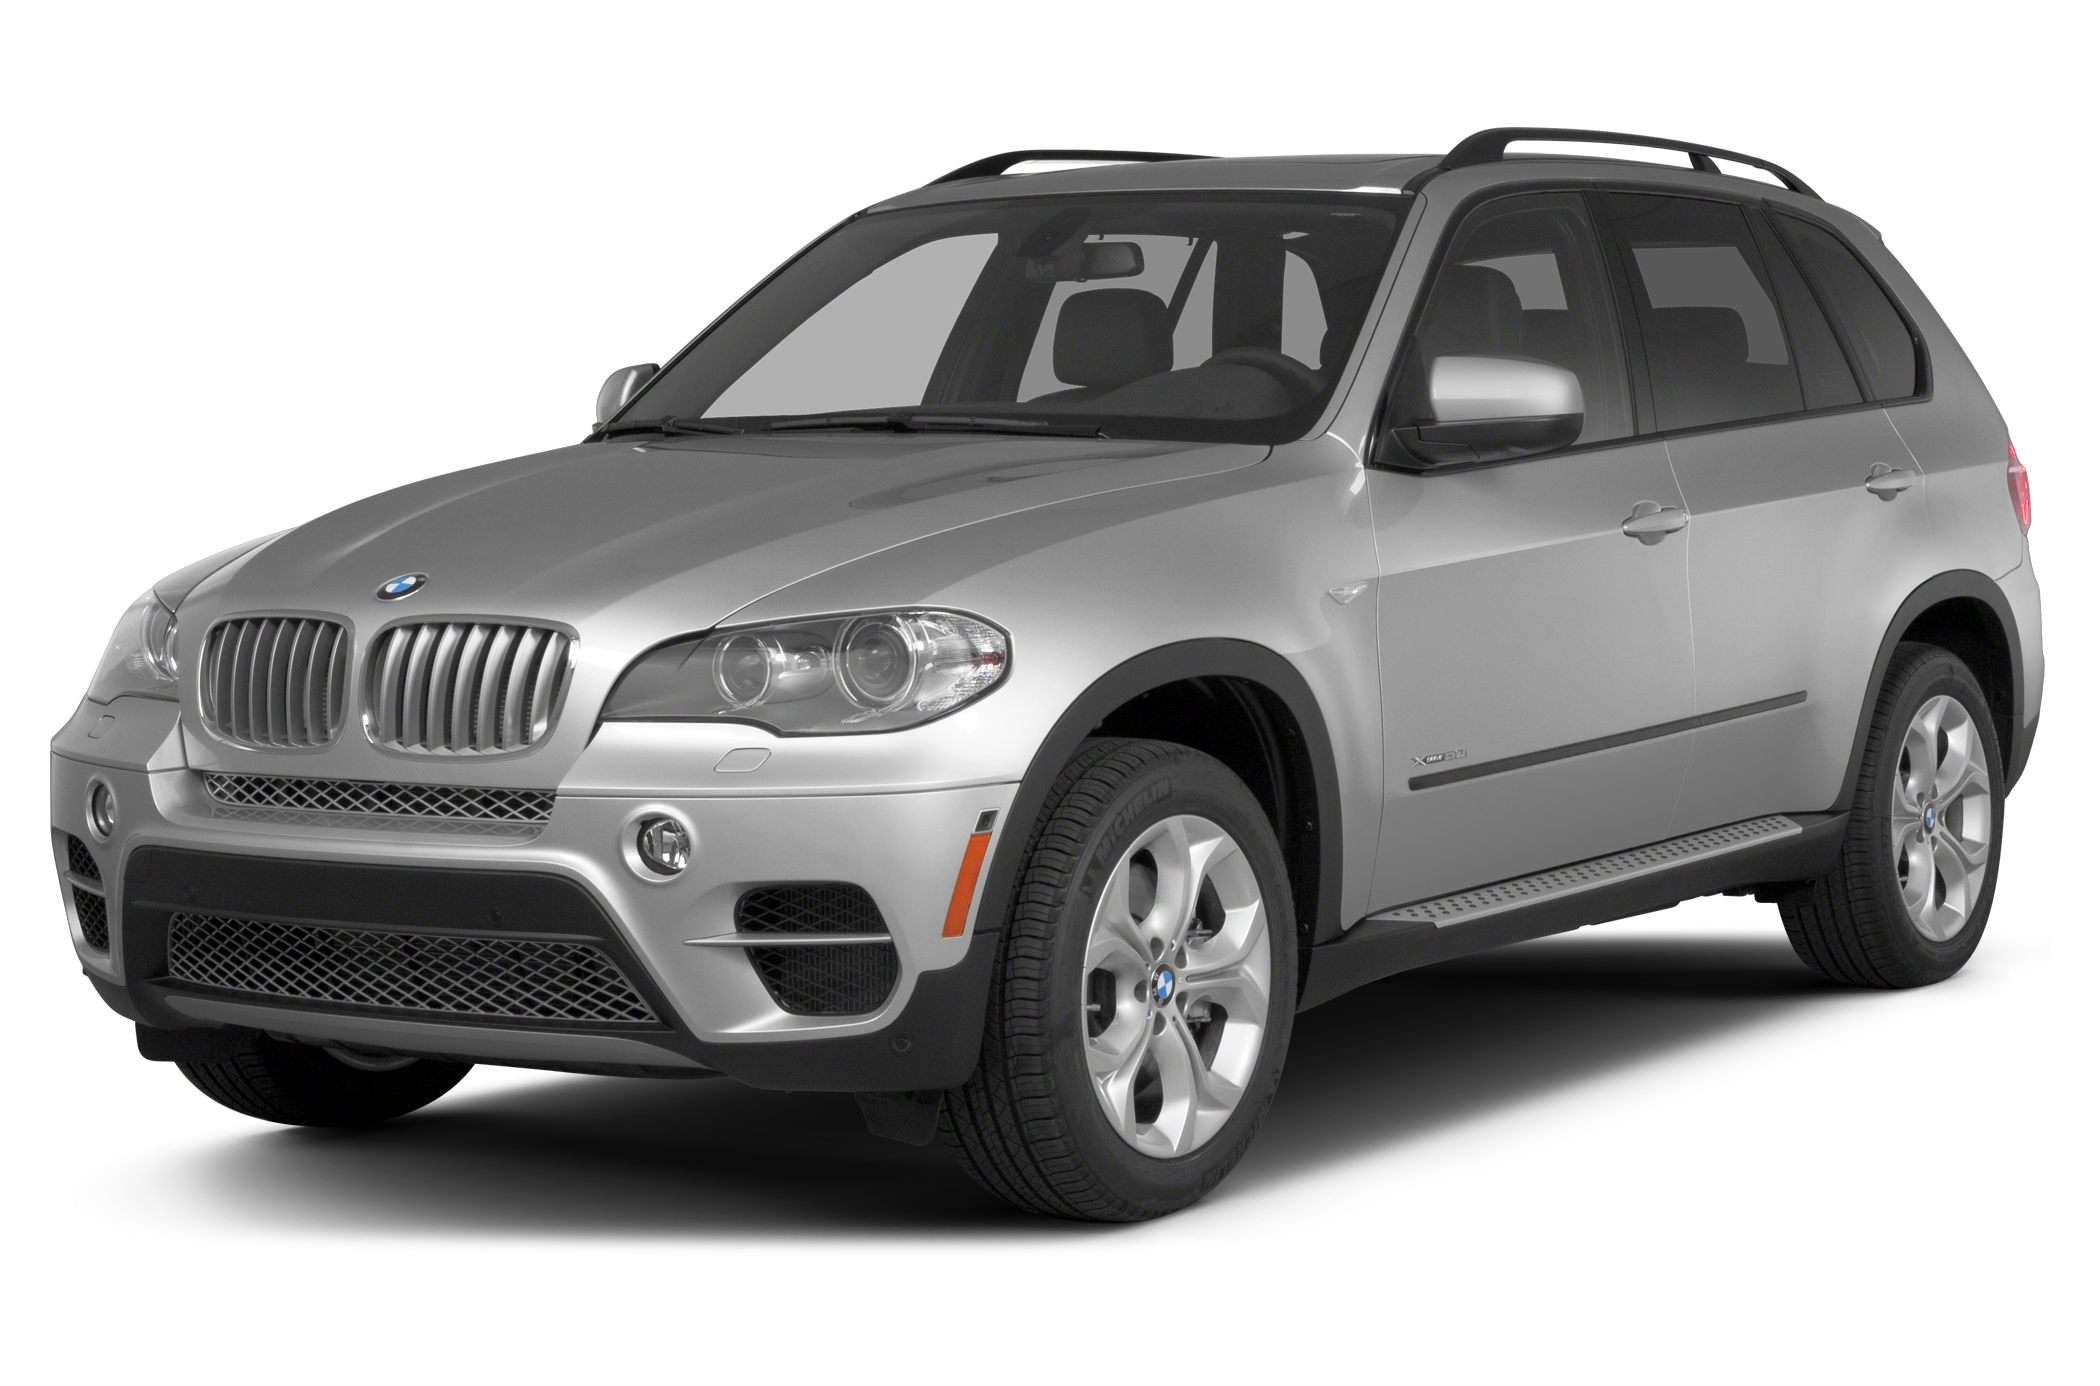 2013 Bmw X5 Safety Features